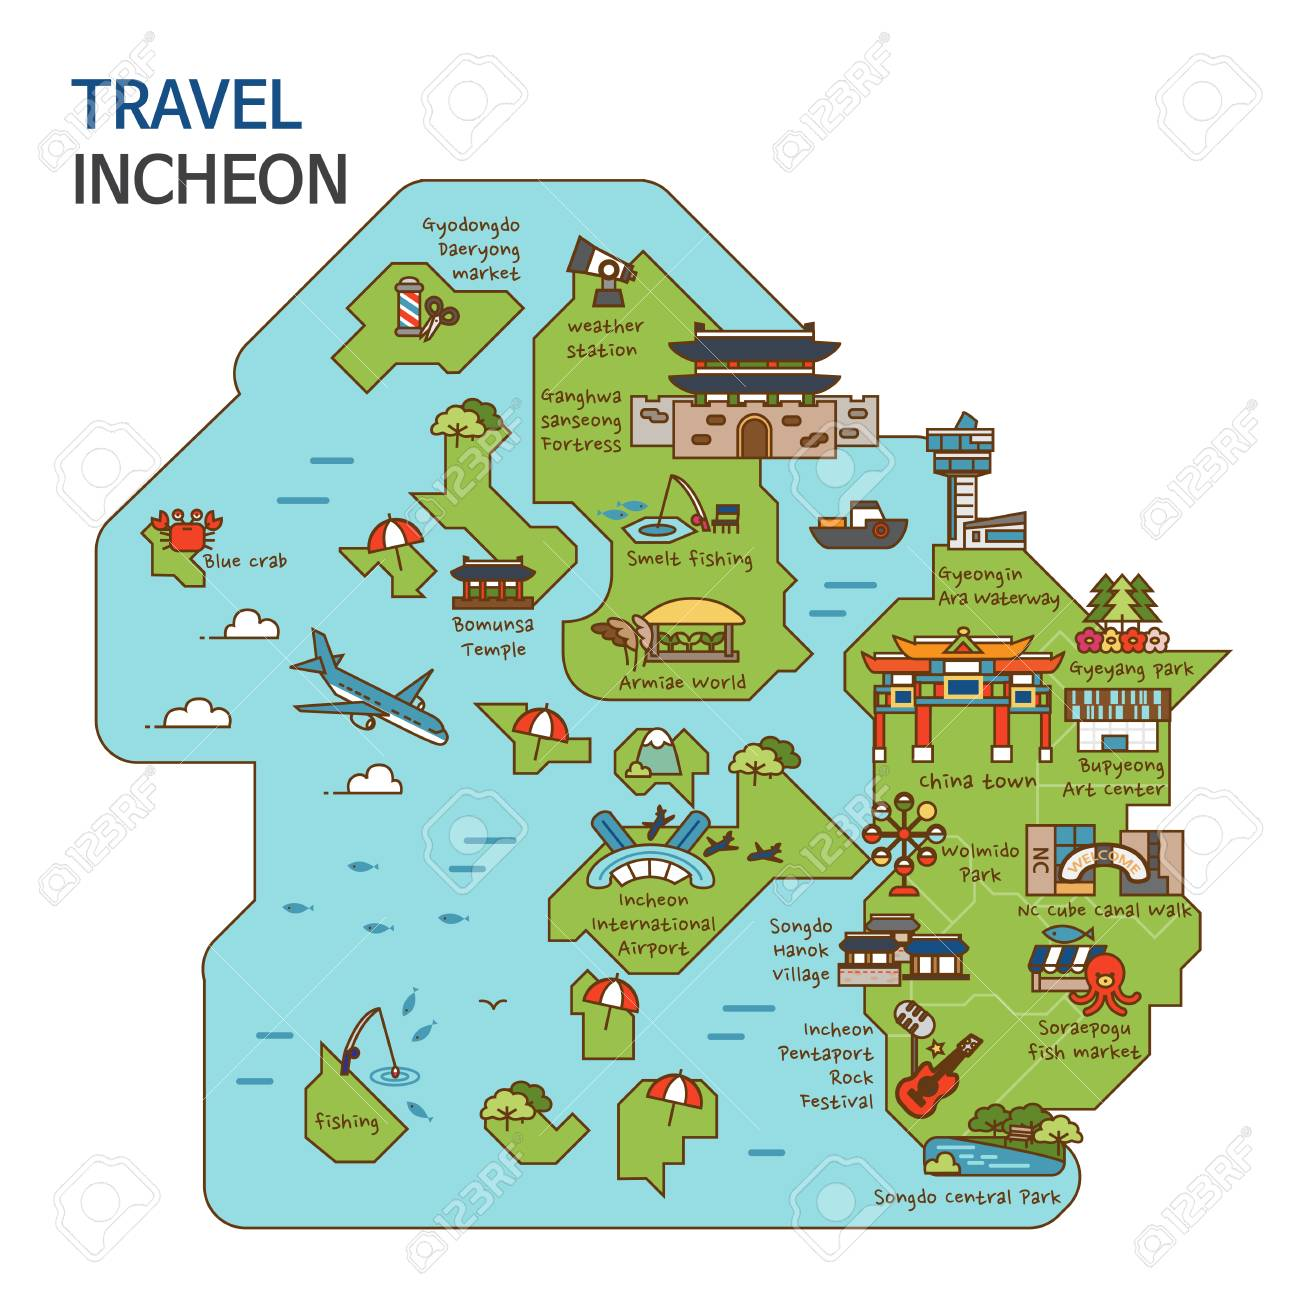 City Tourtravel Map Illustration Incheon City South Korea